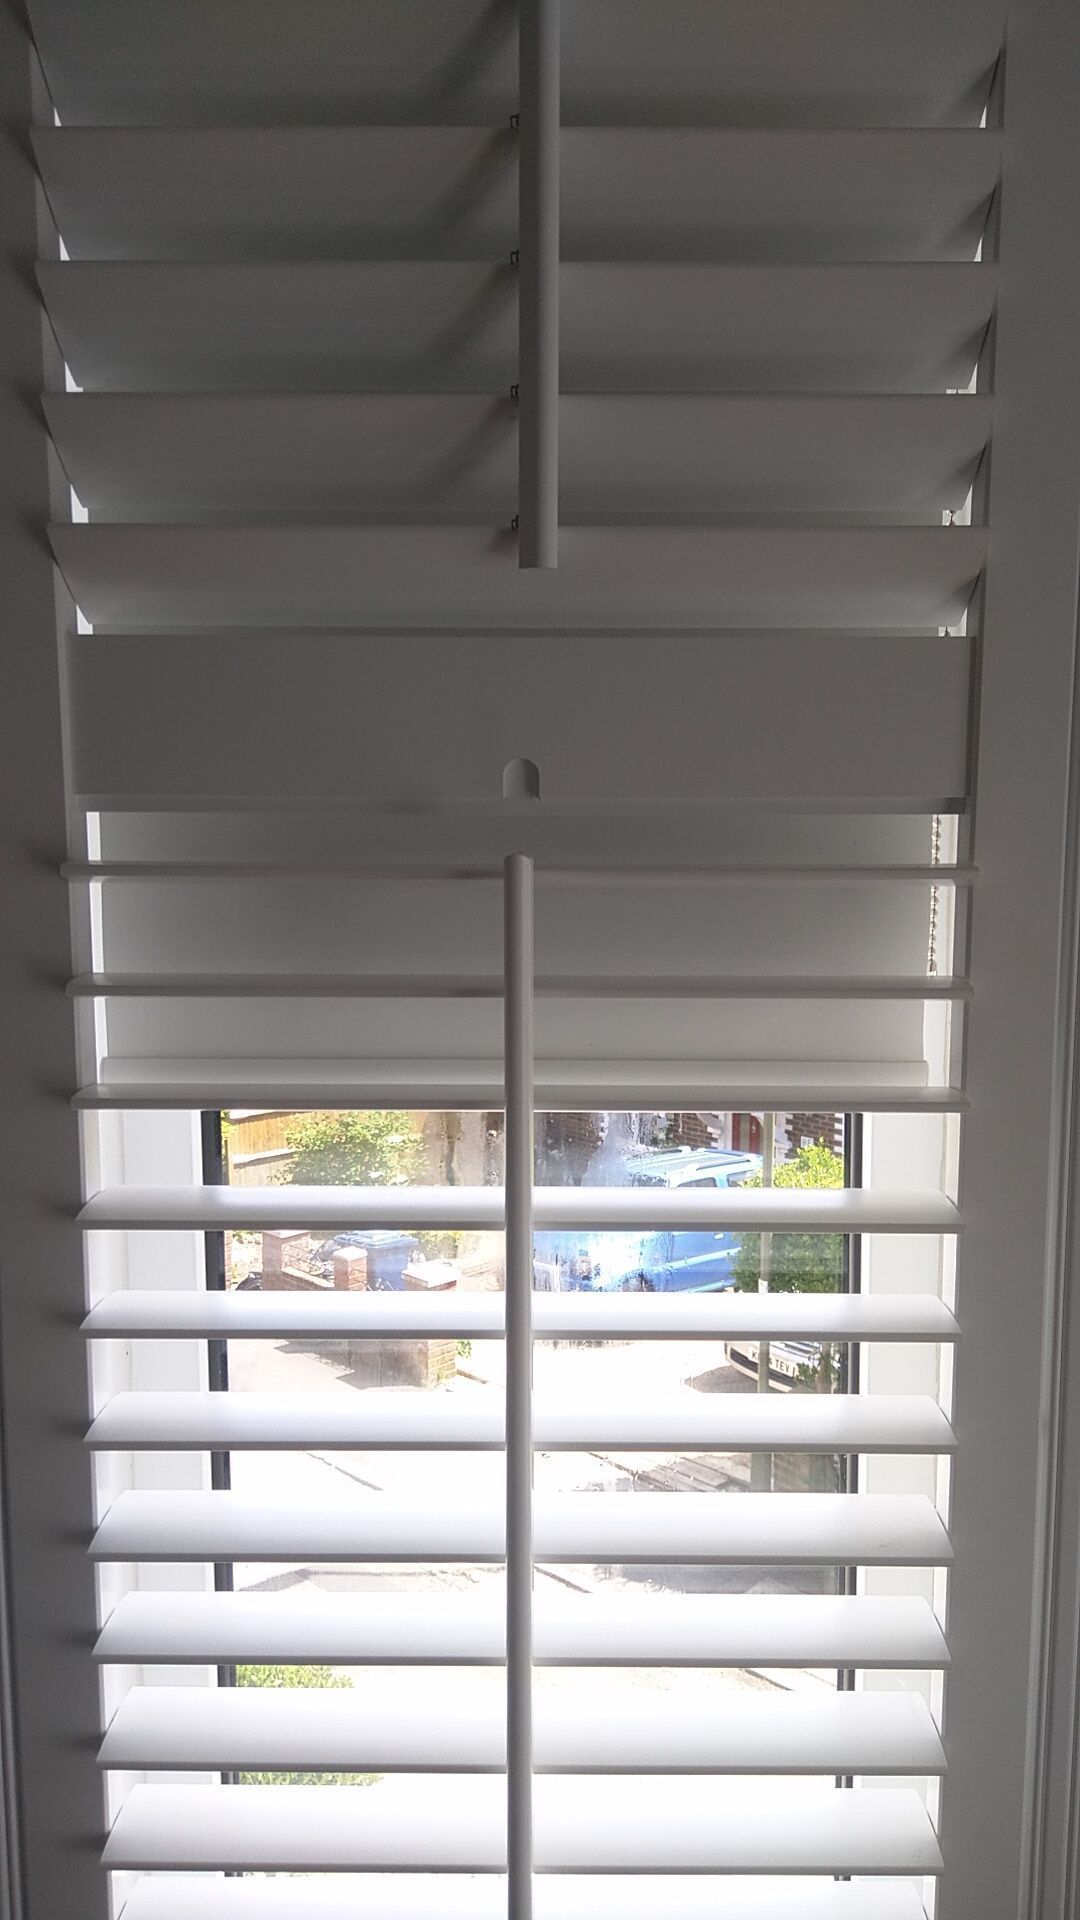 Blackout roller blinds in polar colour which we fitted to bedroom